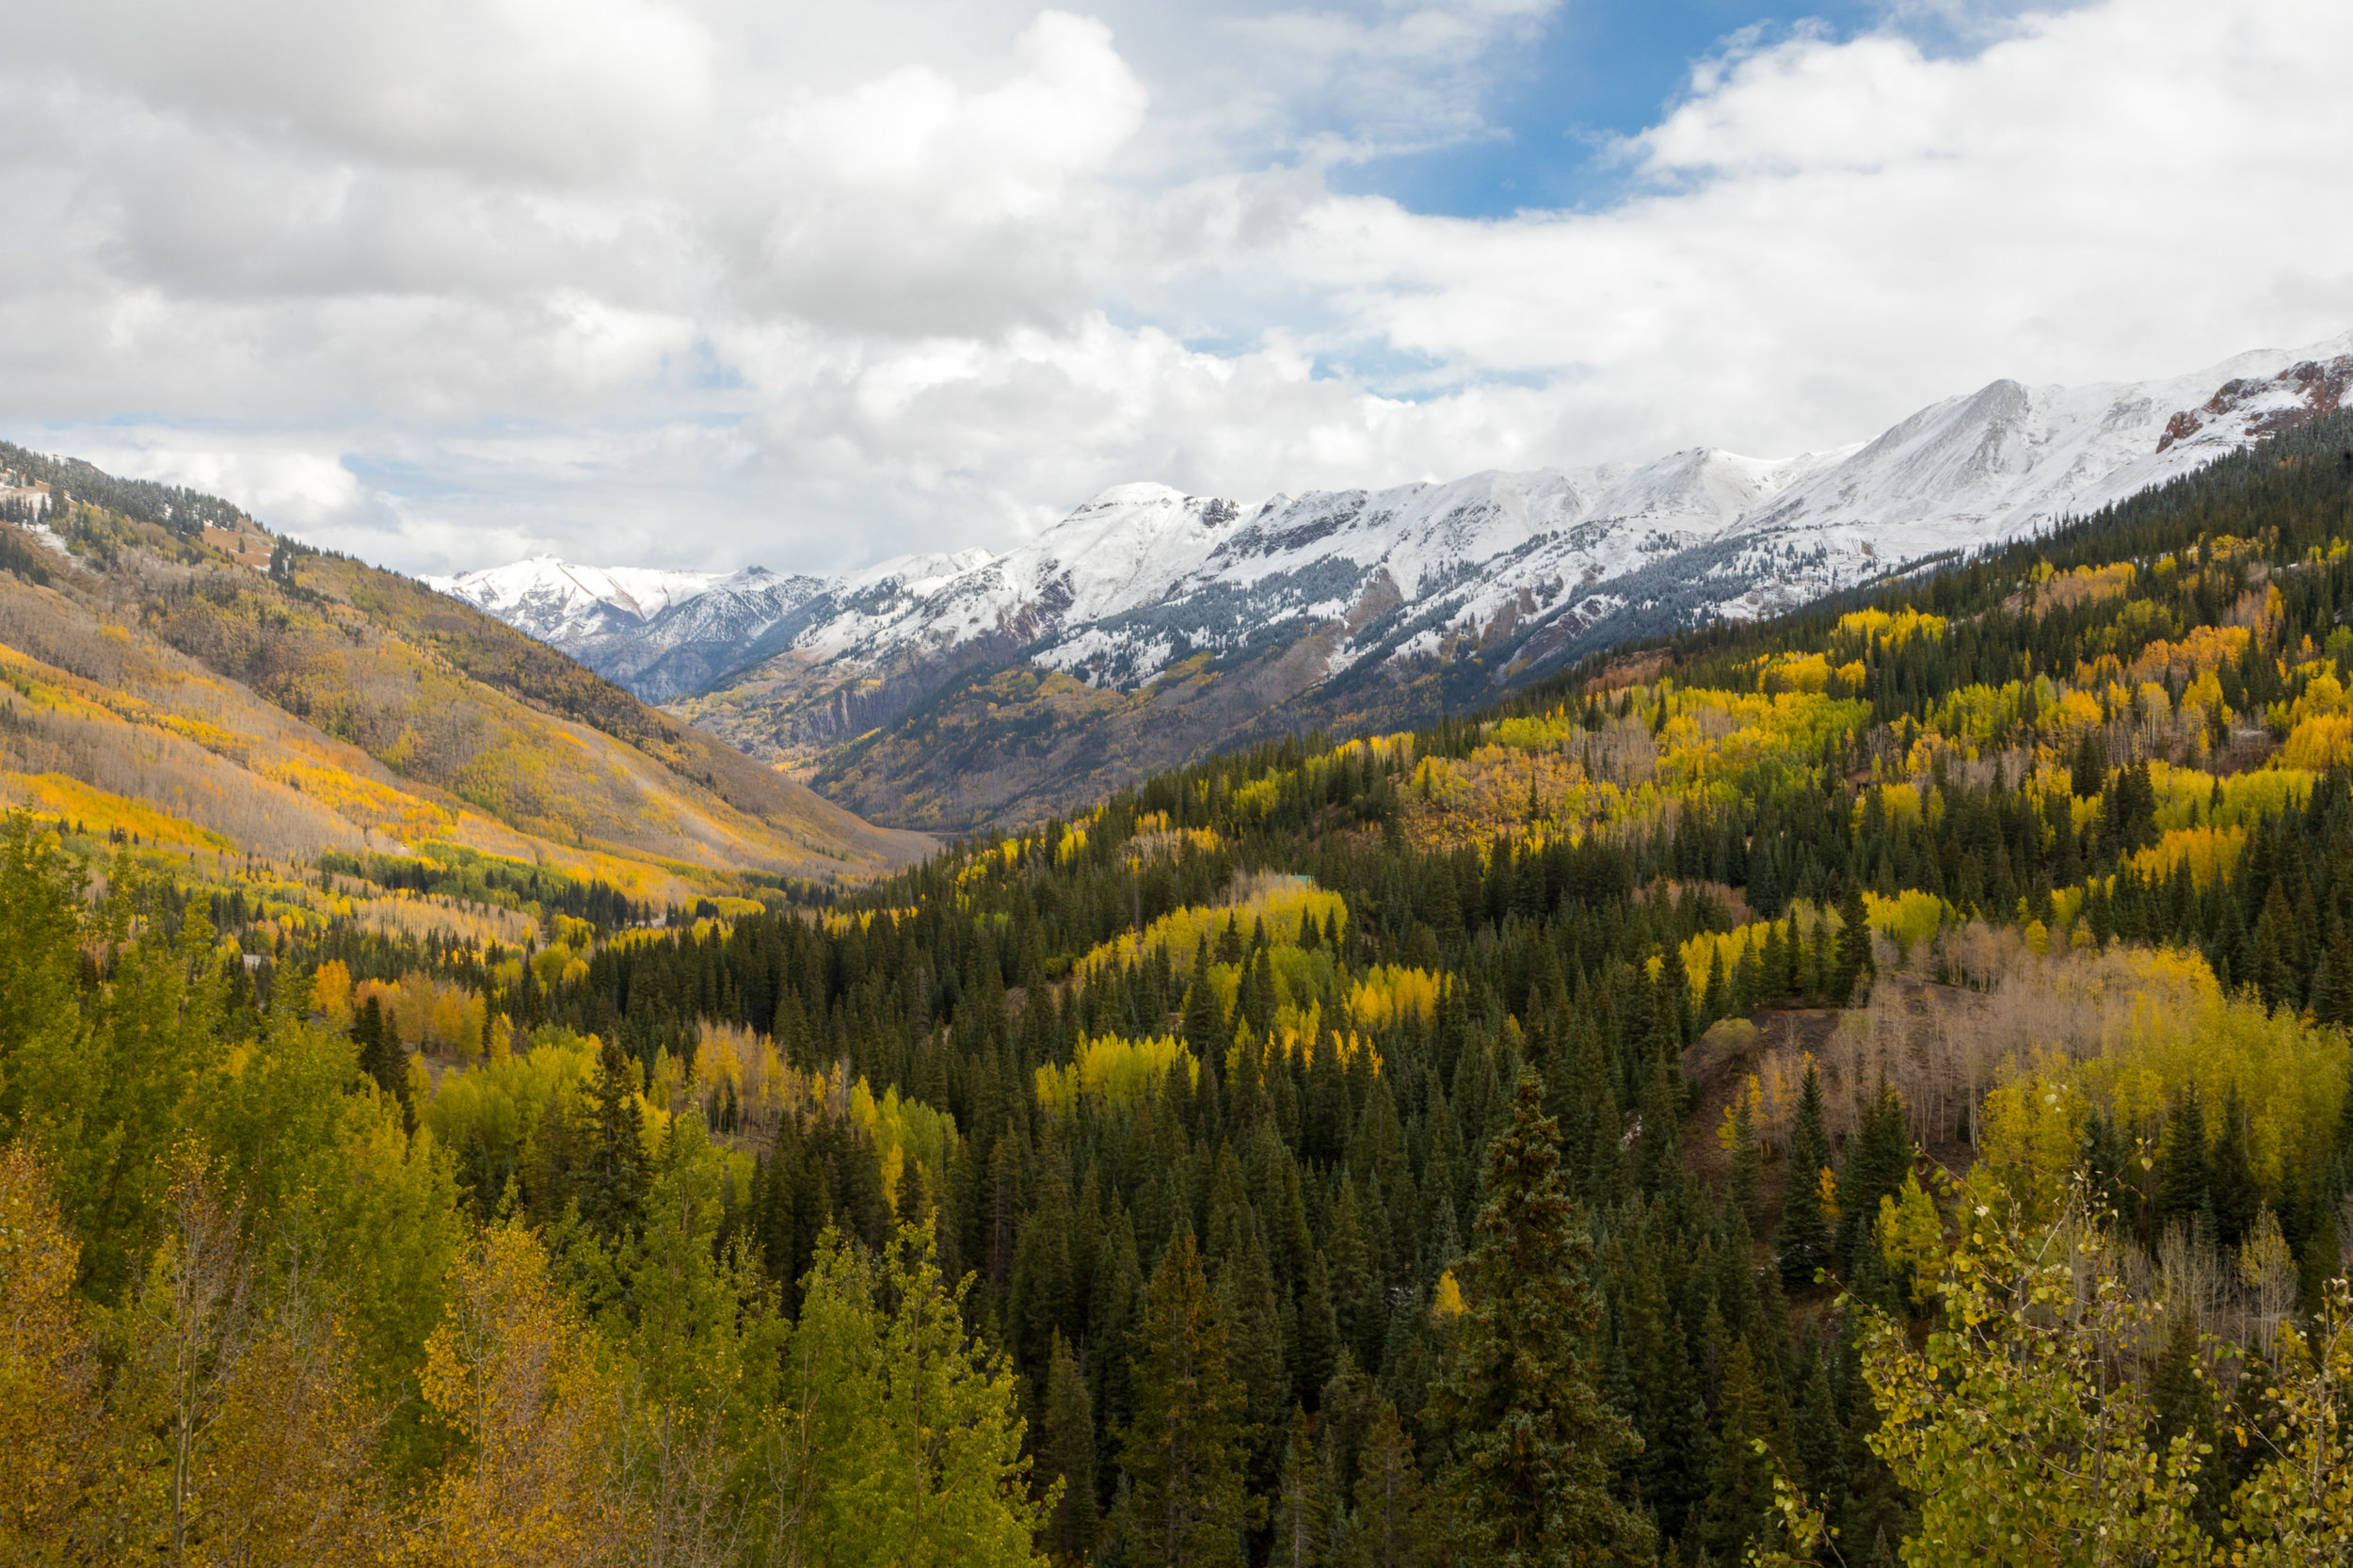 Red Mountain, Image # 7607